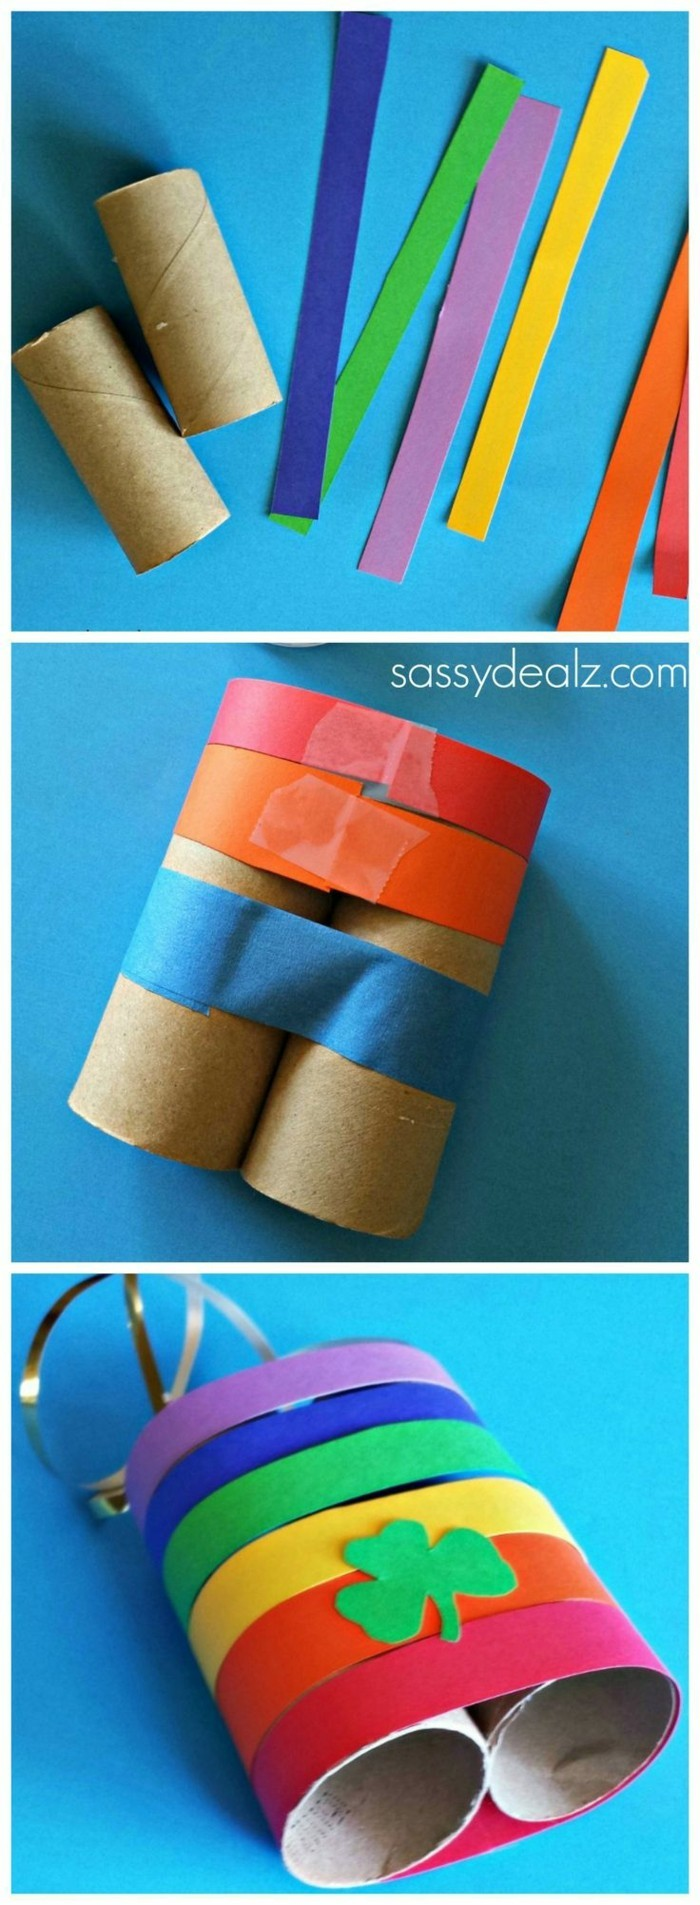 making autumn with children make autumn decoration yourself with paper rolls of binoculars